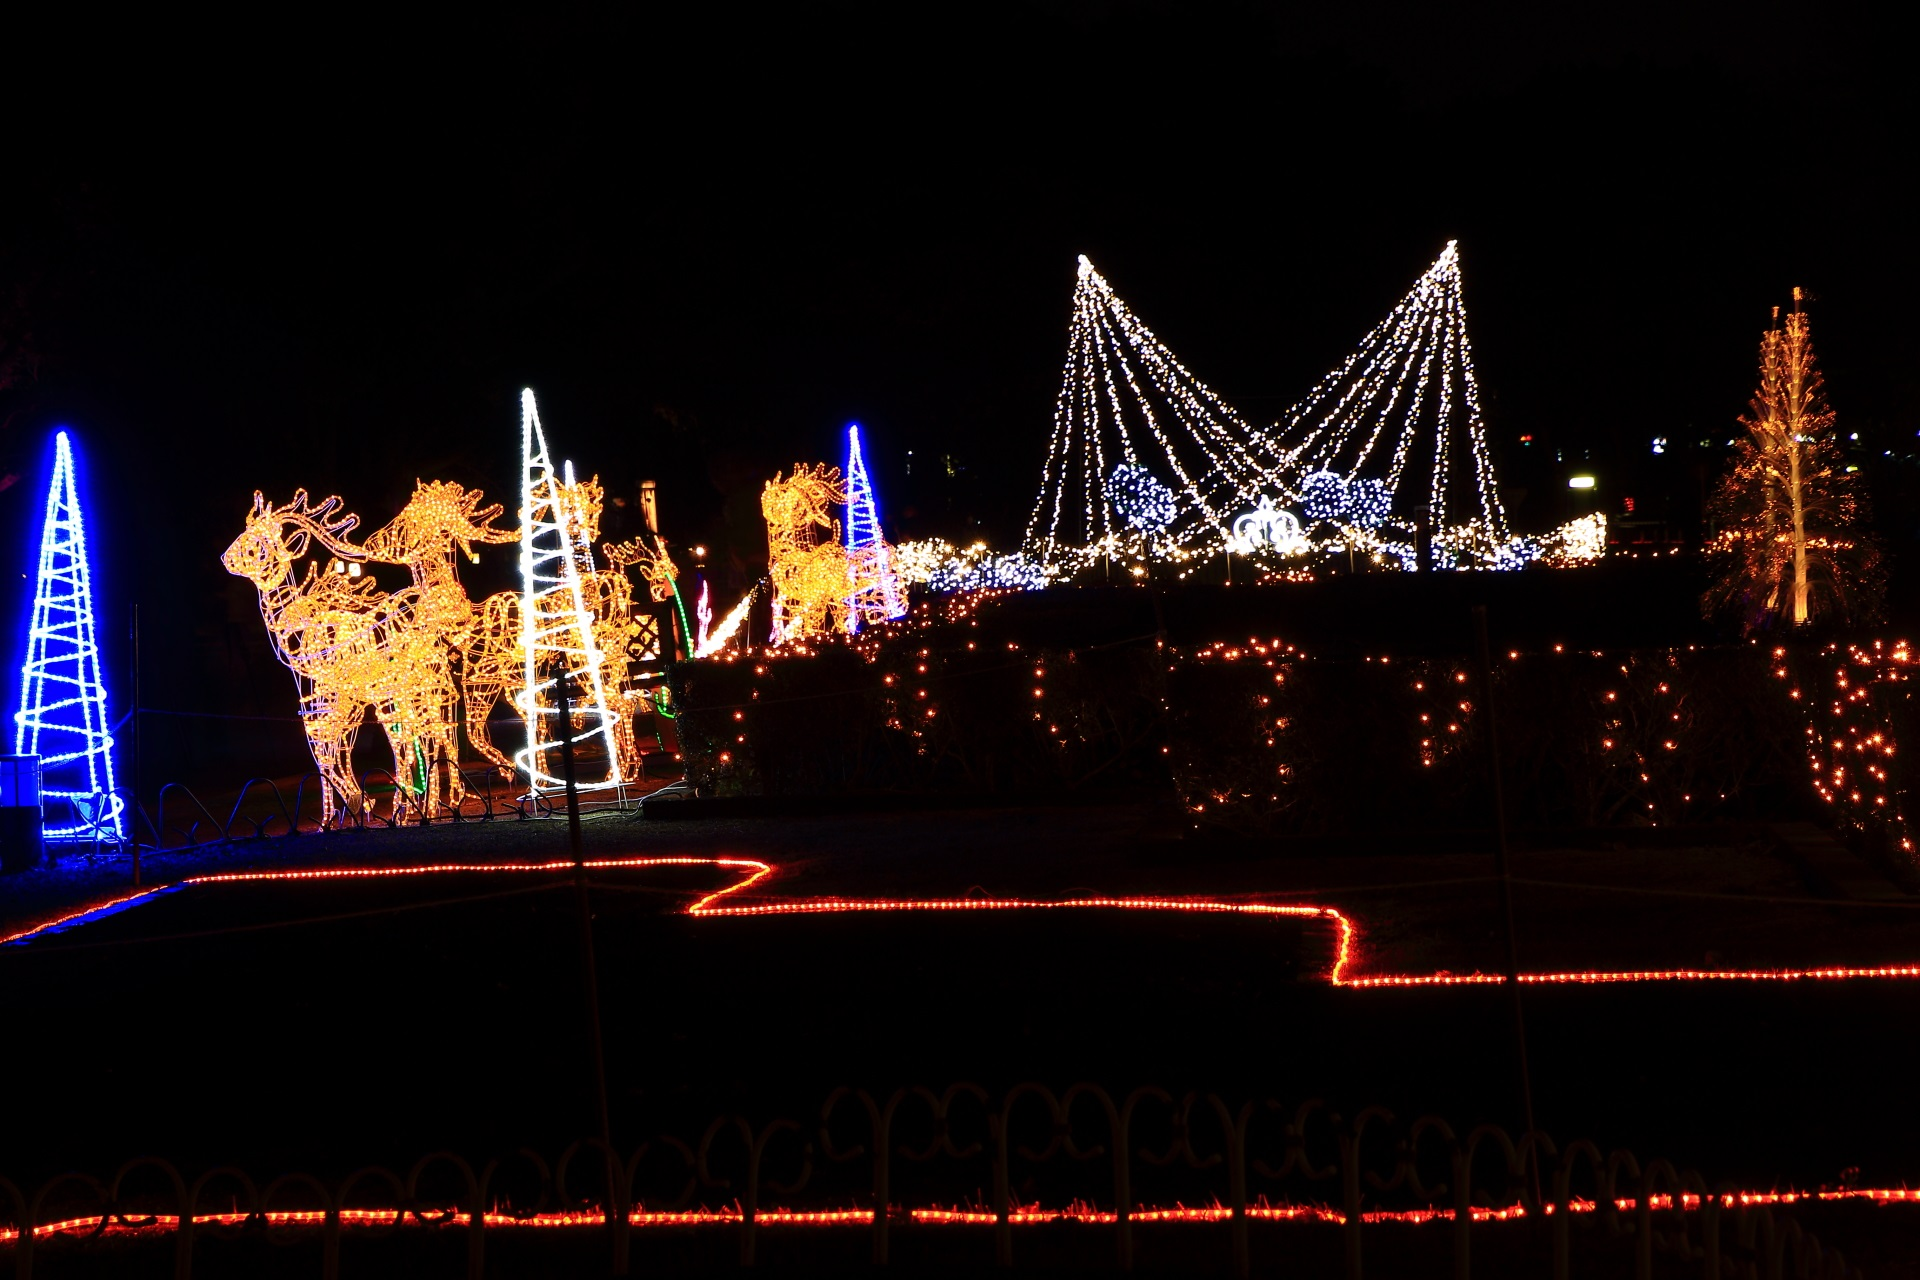 Kyoto Prefectural Botanical Garden illumination